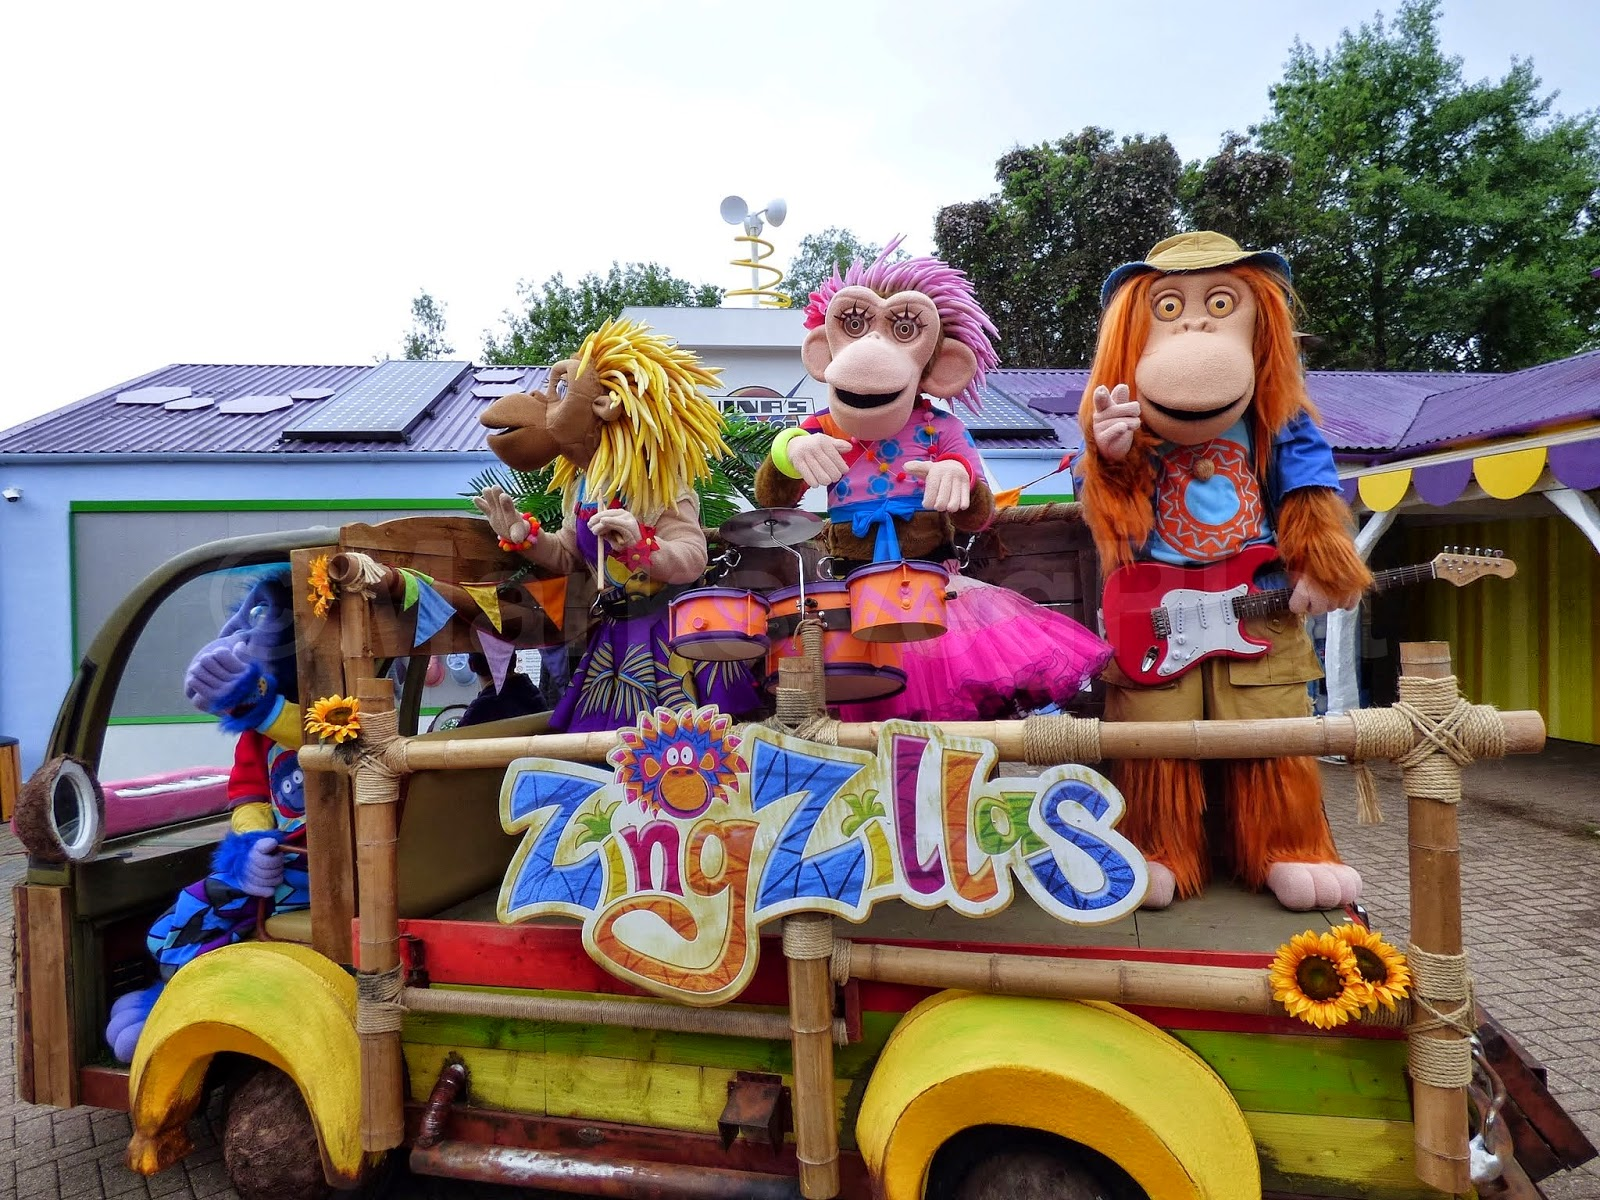 Zingzillas at CBeebies Land